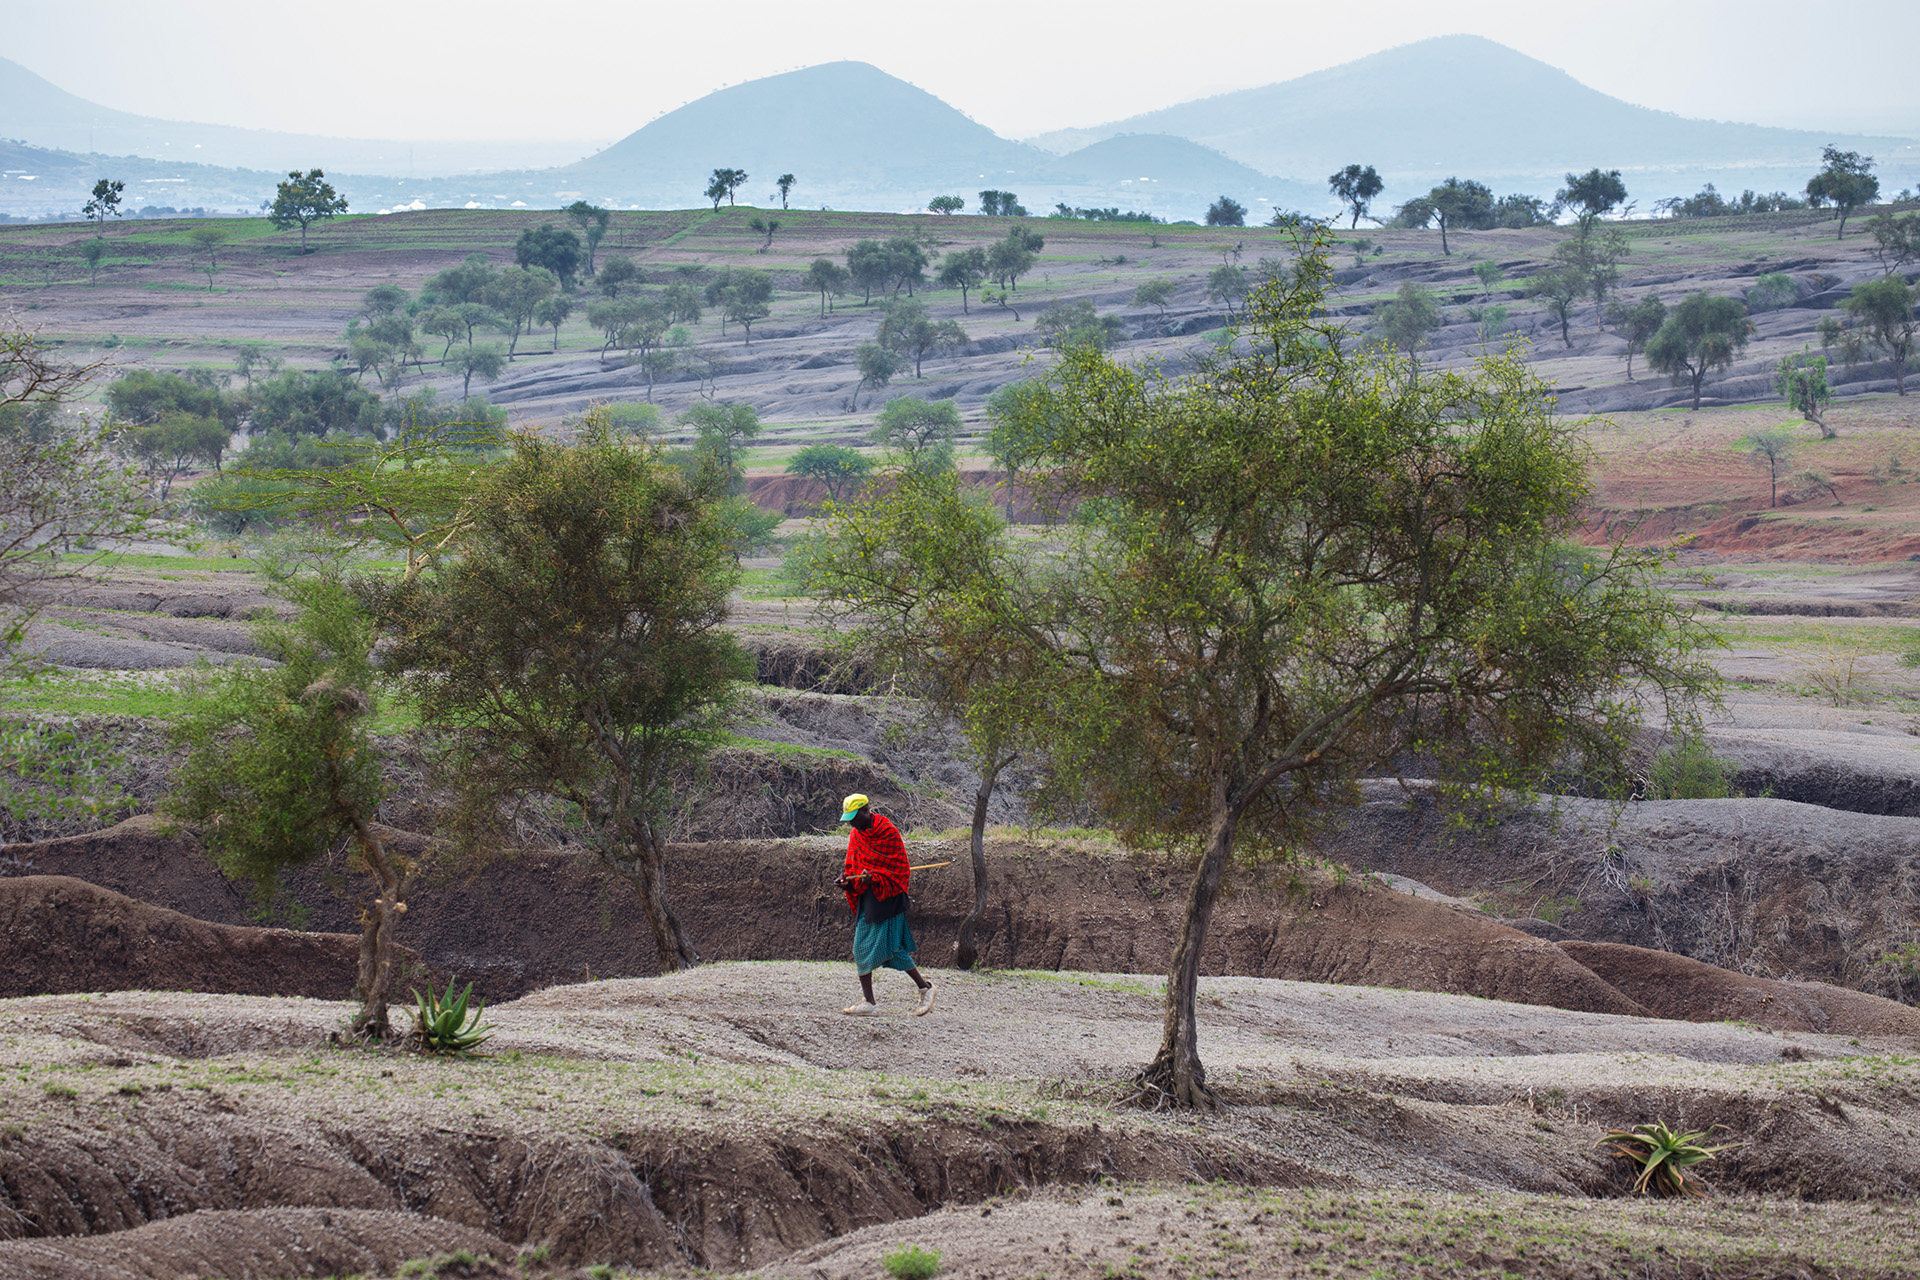 The global threats of climate change and population growth are key catalysts of the soil erosion challenge that is pushing these East African landscapes towards a tipping point. Going beyond it could isolate communities from the resources they rely on. A lone Maasai having to walk across the broken